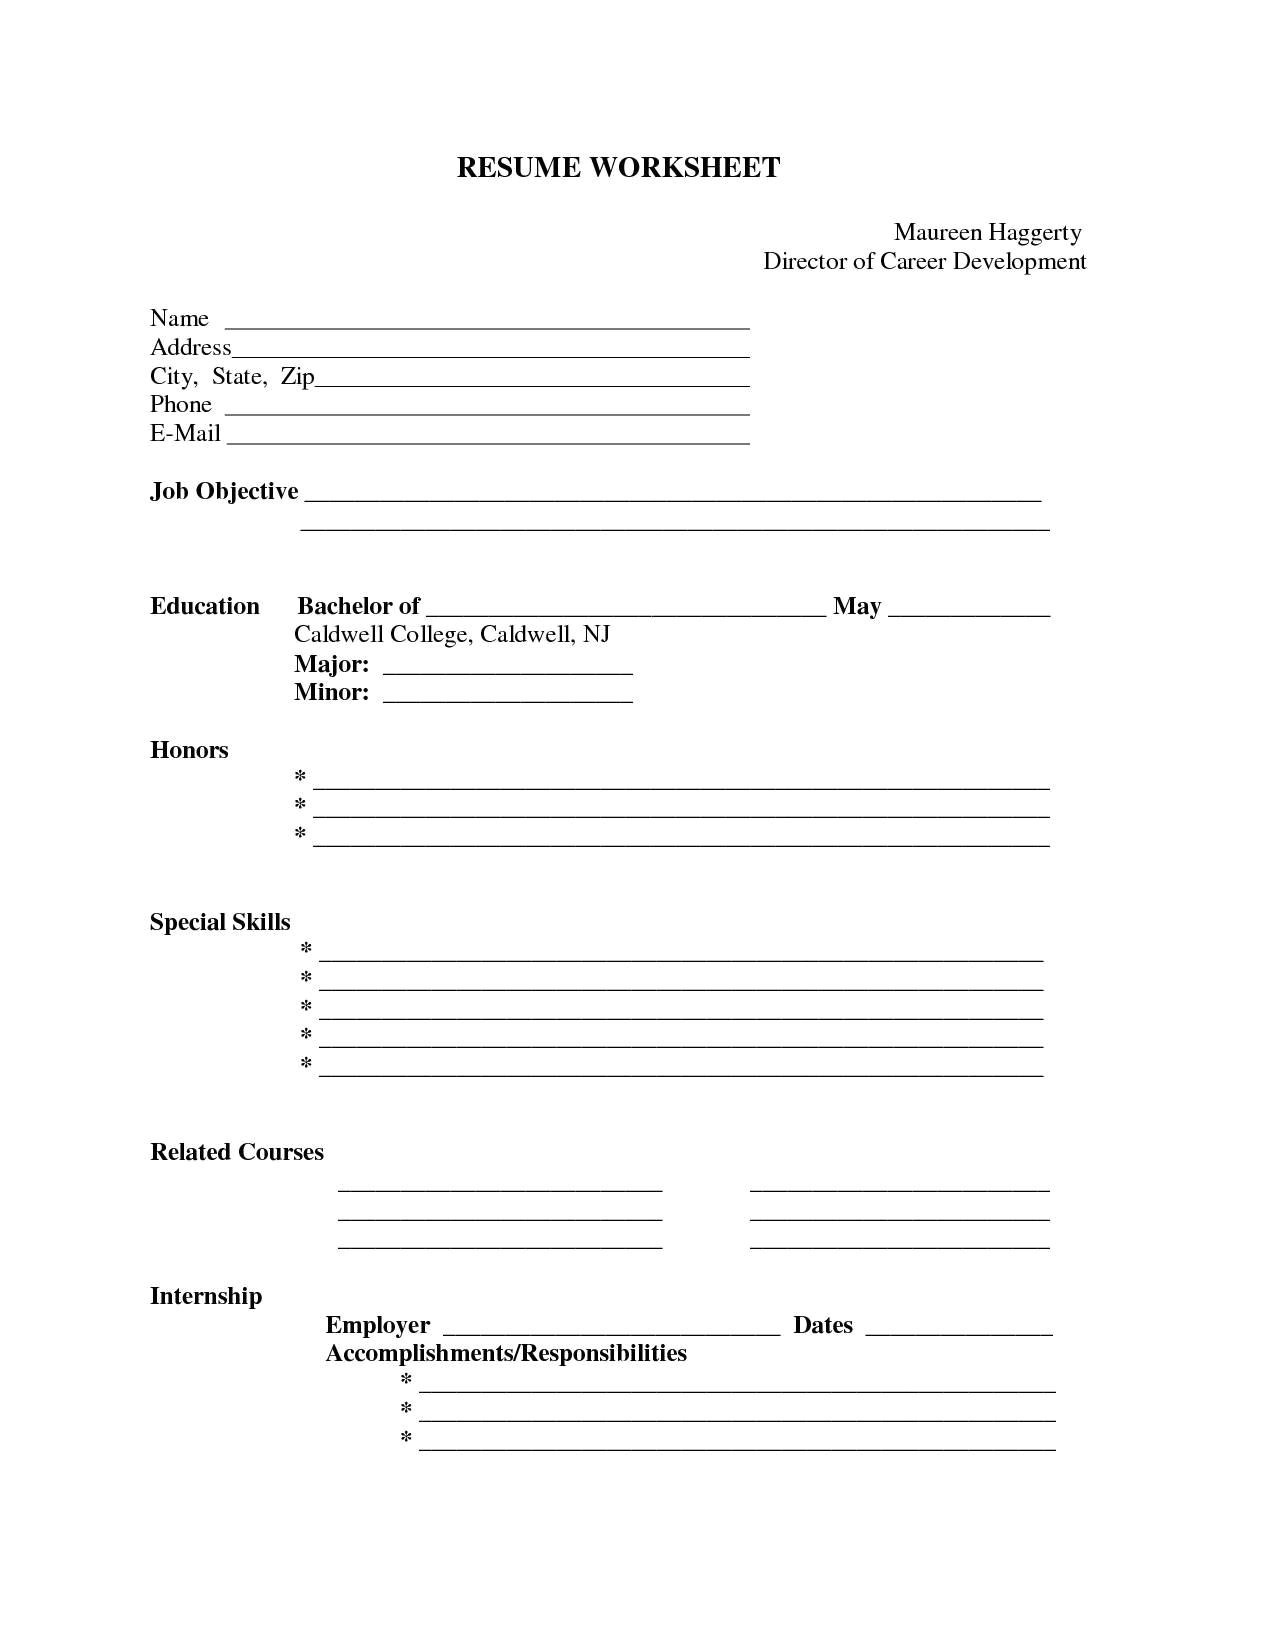 Free Resume Templates to Fill In and Print Free Printable Blank Resume forms Http Www